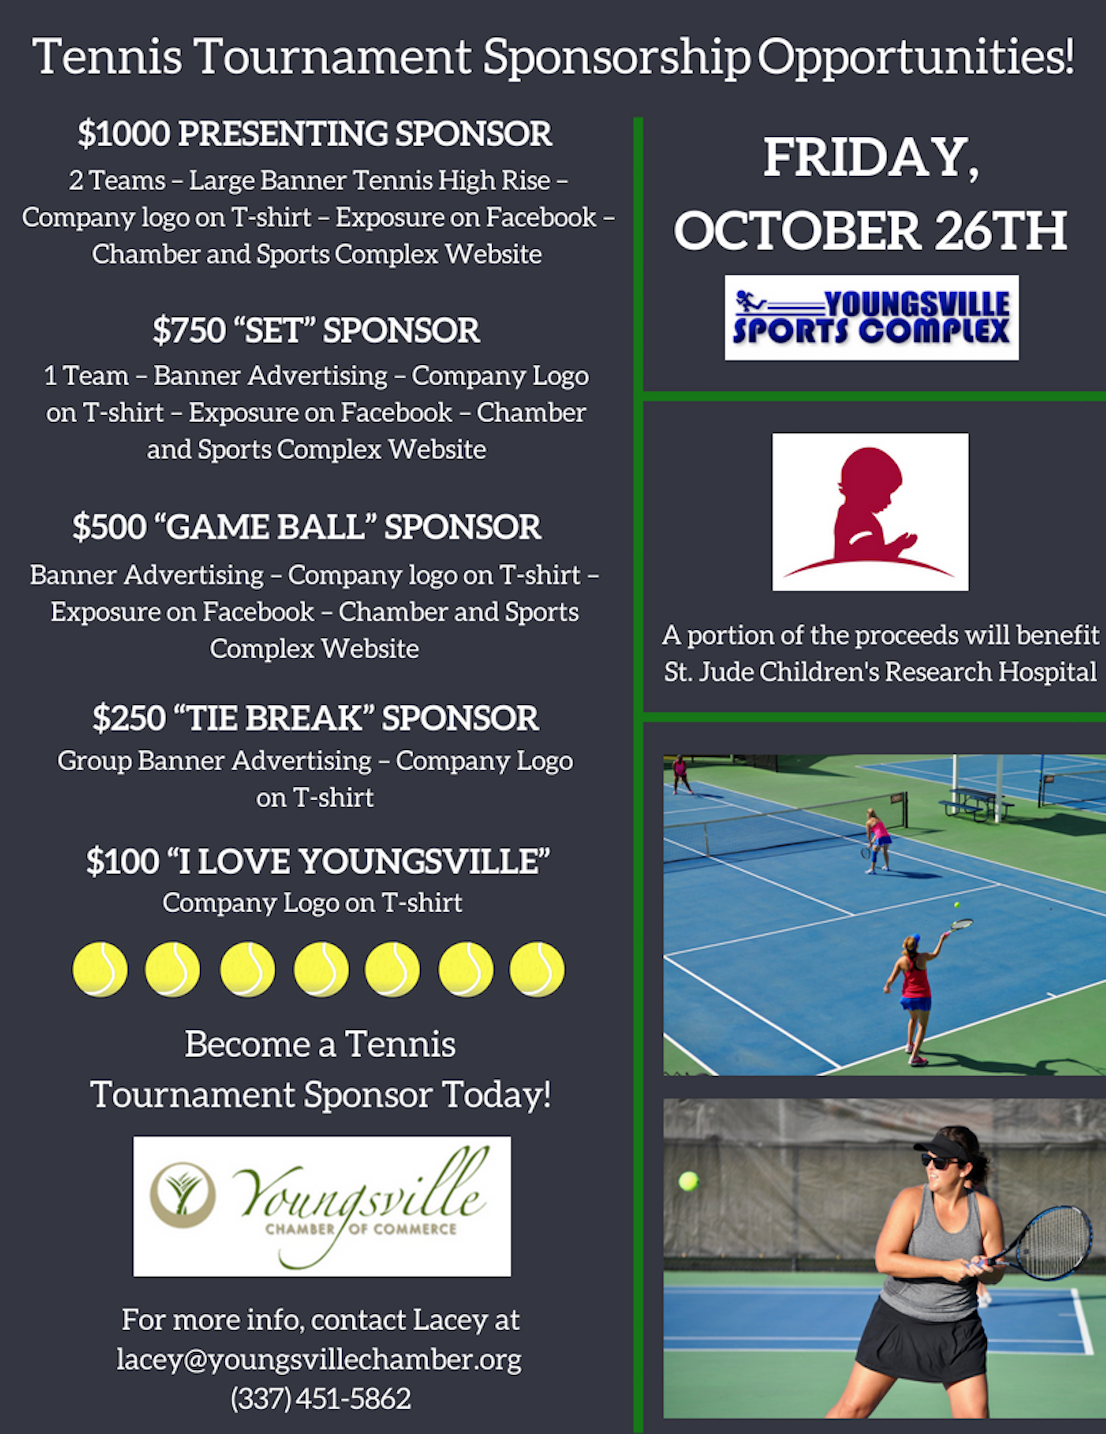 4th Annual Youngsville Chamber Tennis Tournament @ Youngsville Sports Complex | Youngsville | Louisiana | United States